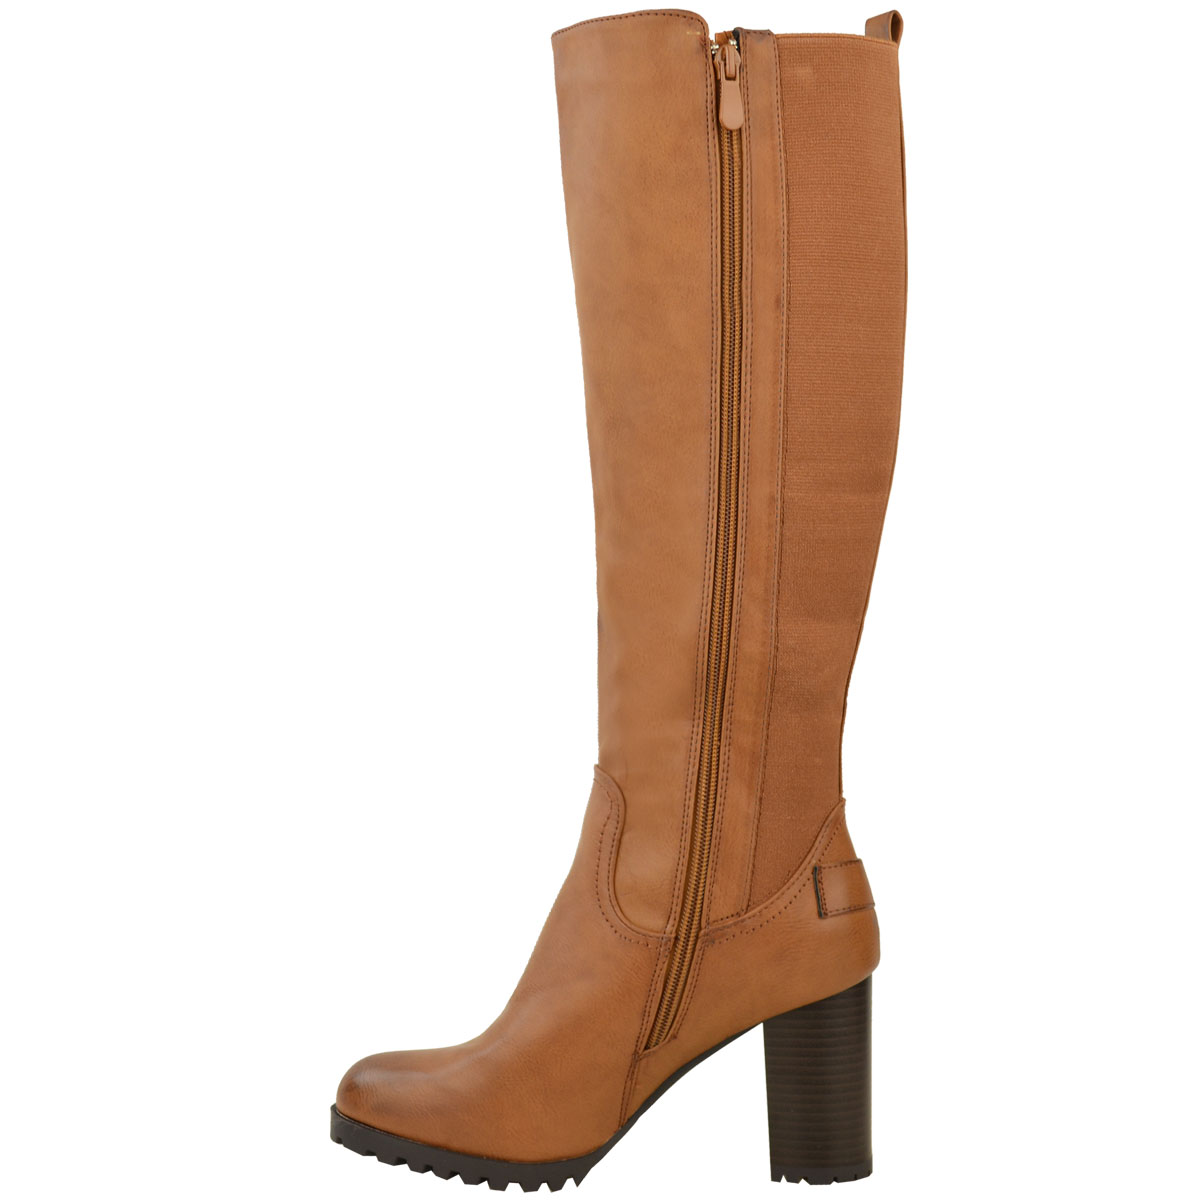 Womens-Ladies-Knee-Calf-High-Boots-Block-Heels-Stretchy-Thigh-Shoes-Grip-Size thumbnail 9